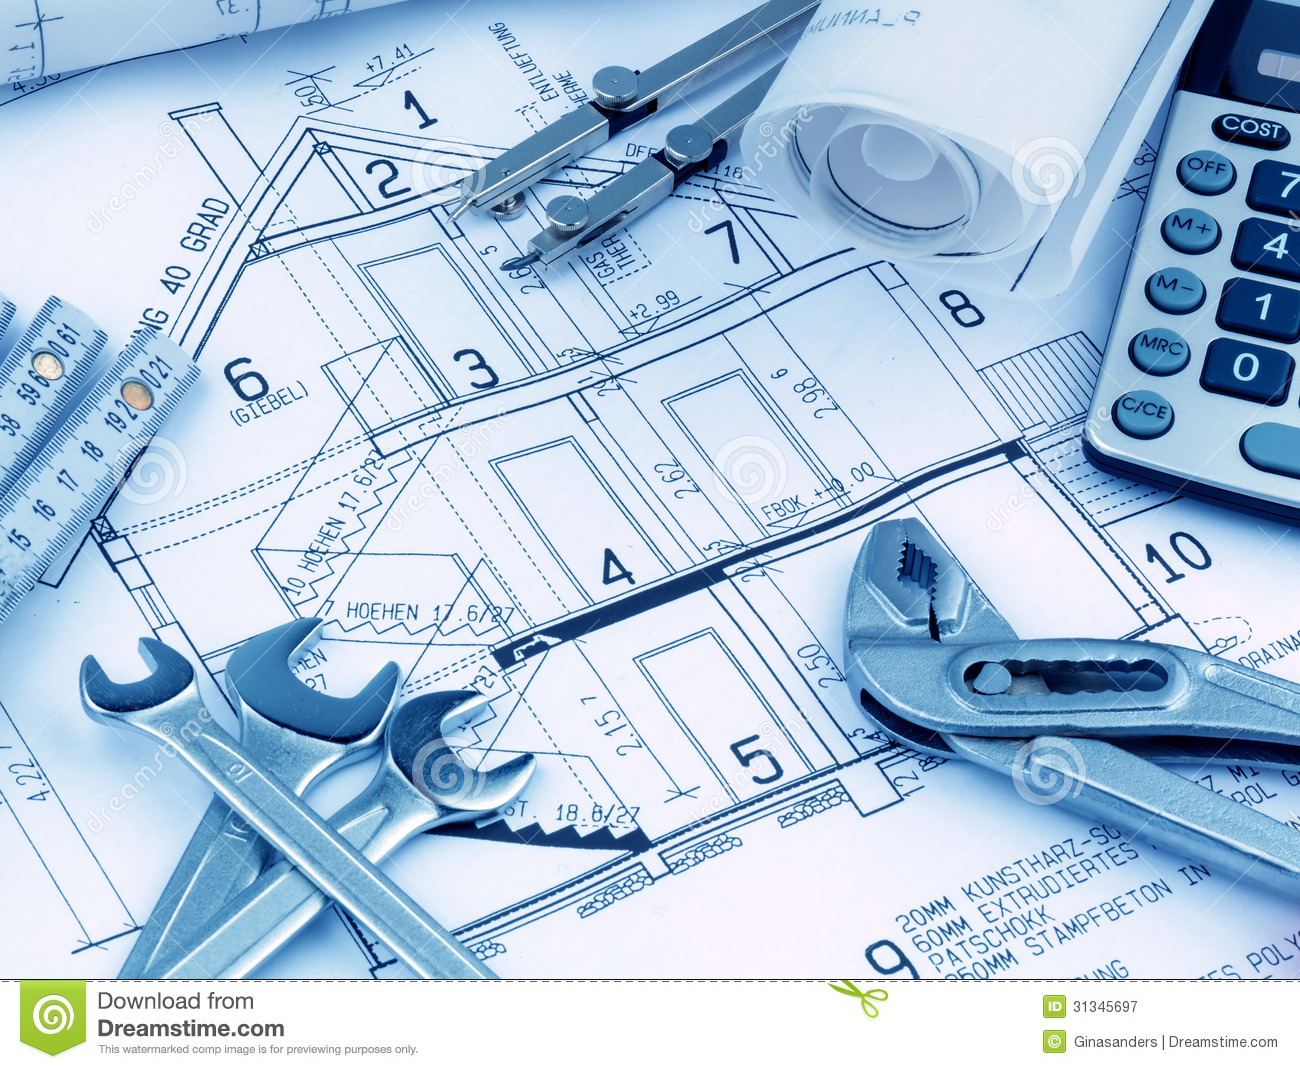 House Plan With Calculator Royalty Free Stock Photography